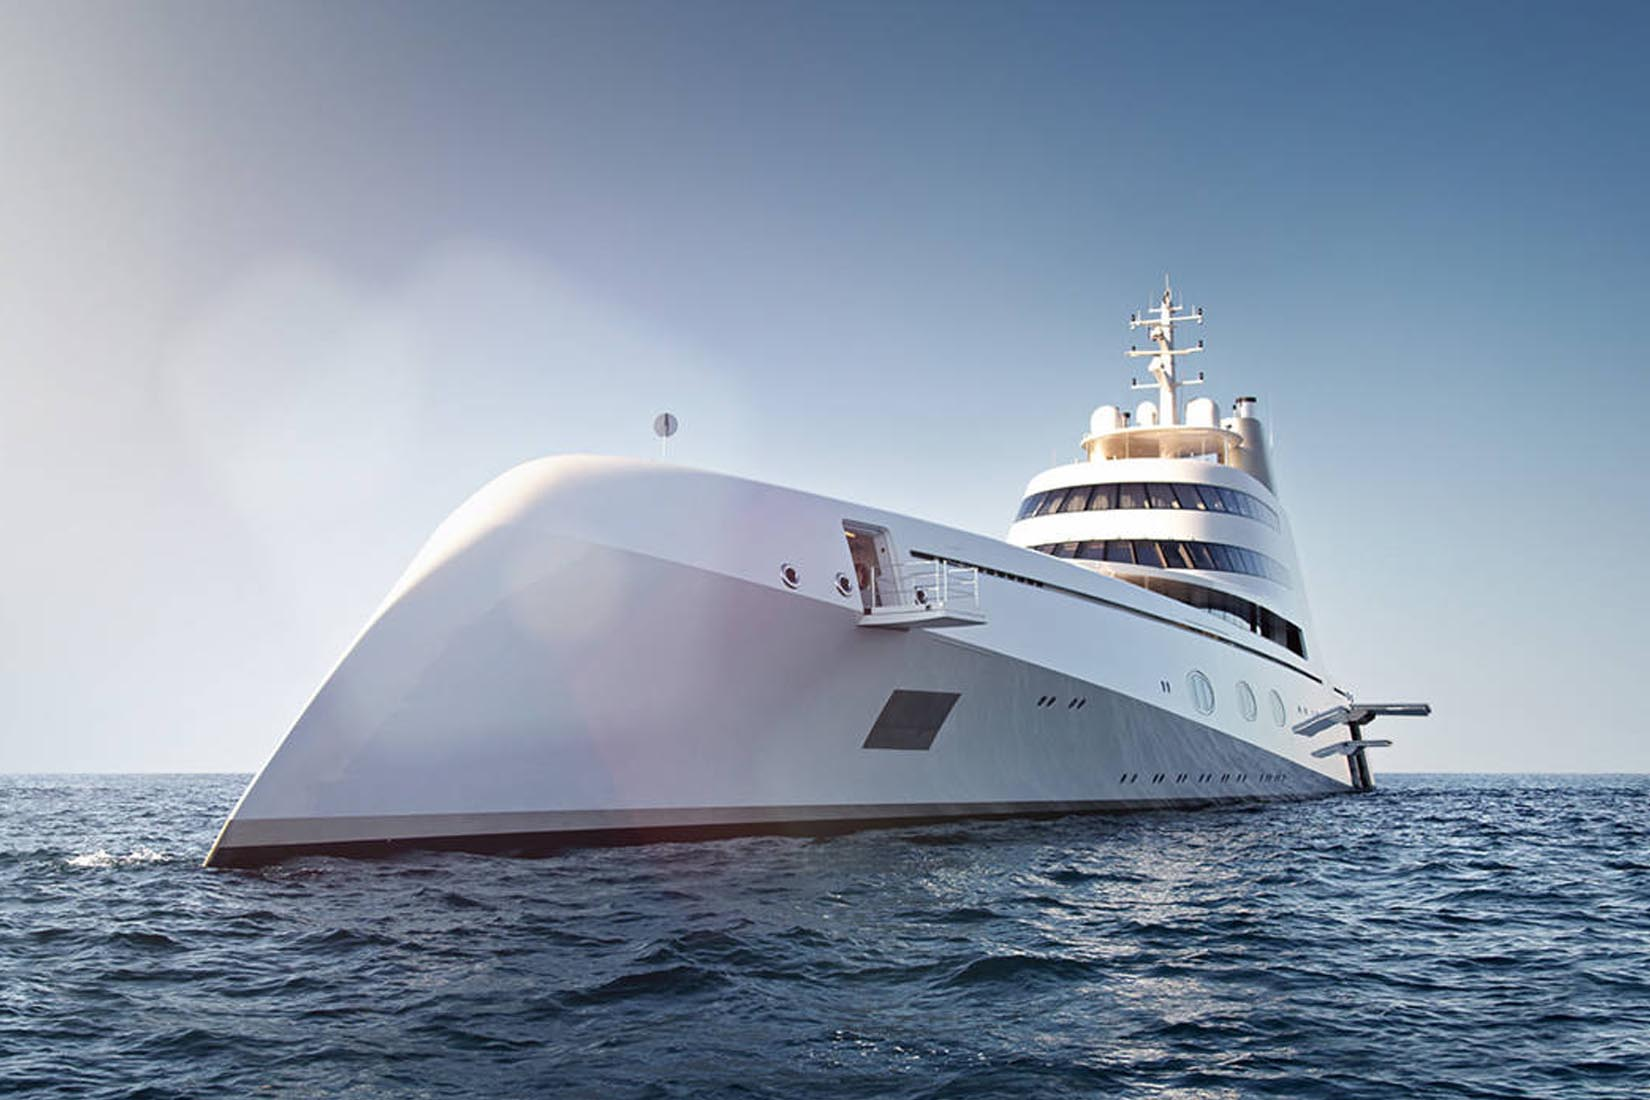 largest yacht a motor yacht review Luxe Digital